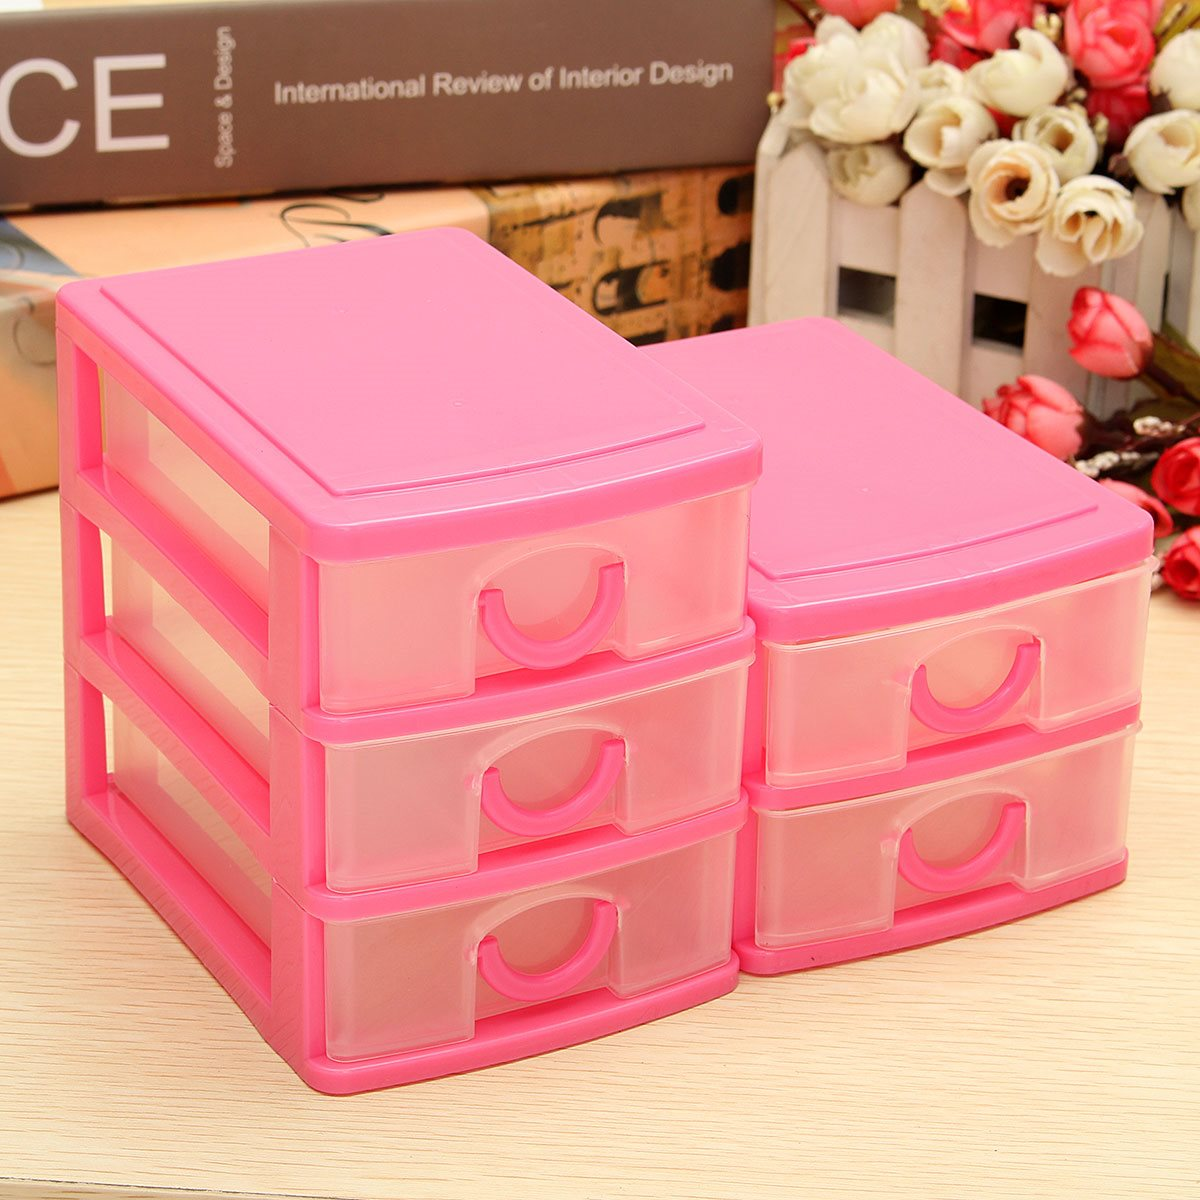 Plastic craft storage boxes - Sundries Drawer 2 3 Layer Mini Desk Storage Box Office Organiser Trays Jewellery Necklace Earring Ring Craft Box